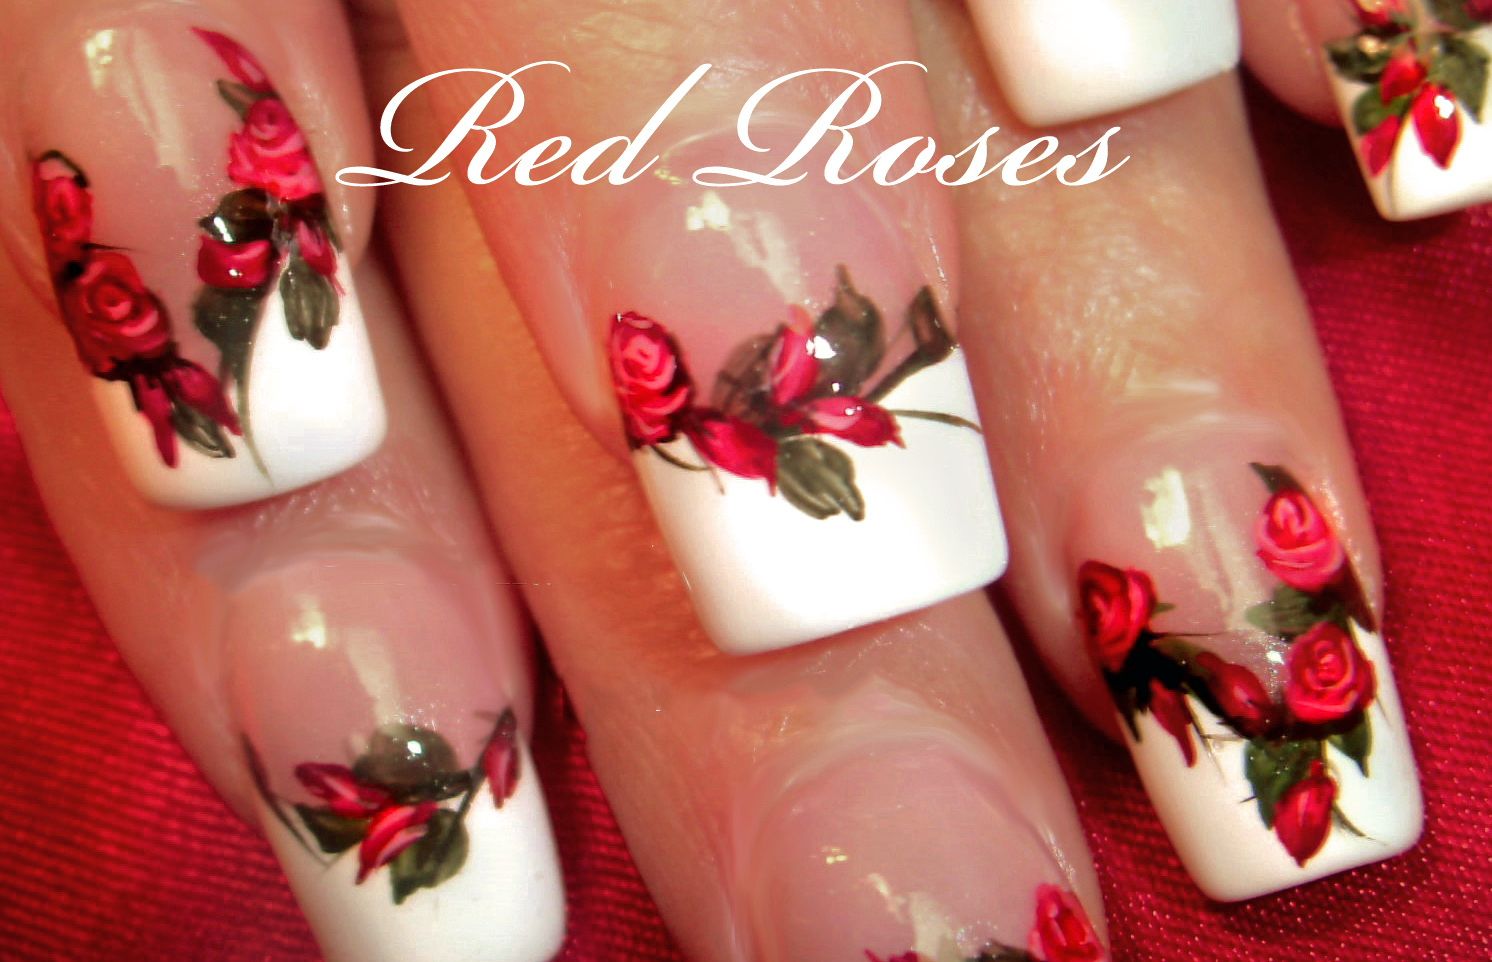 Robin moses nail art diy easy red rose nails romantic roses diy easy red rose nails romantic roses nail art design tutorial prinsesfo Gallery